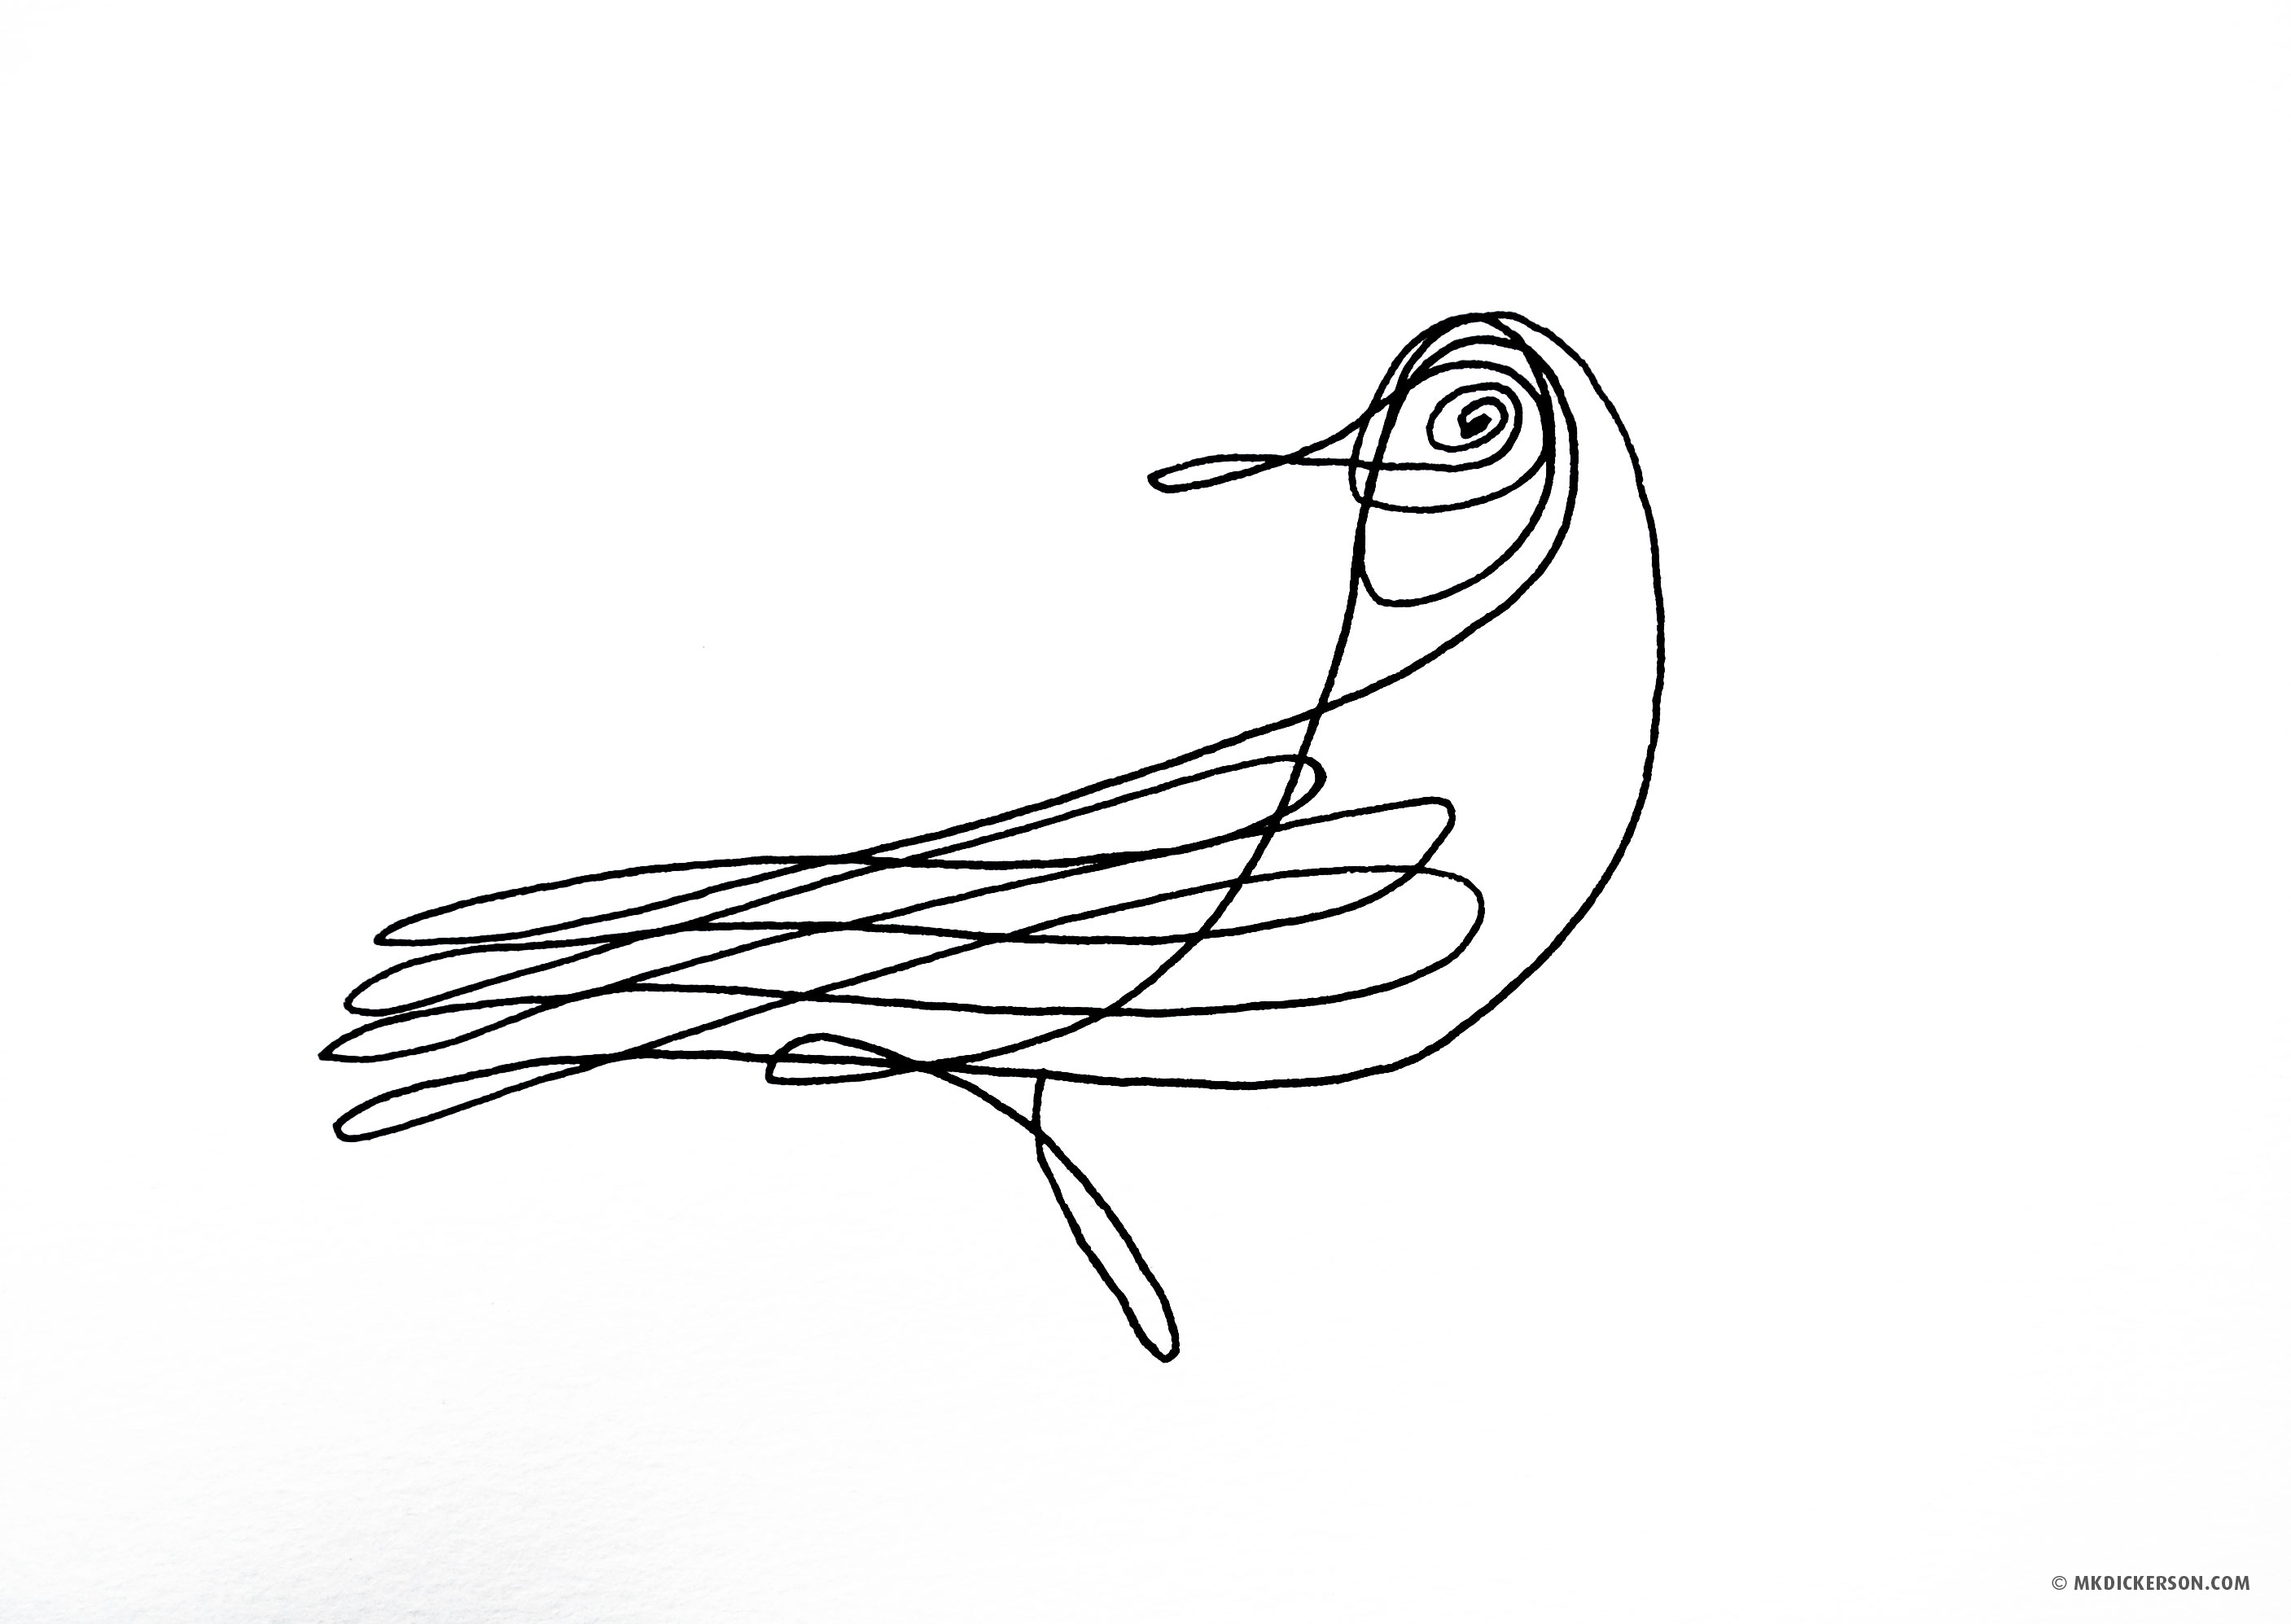 Simple Bird Line Art : Day continuous line bird a art